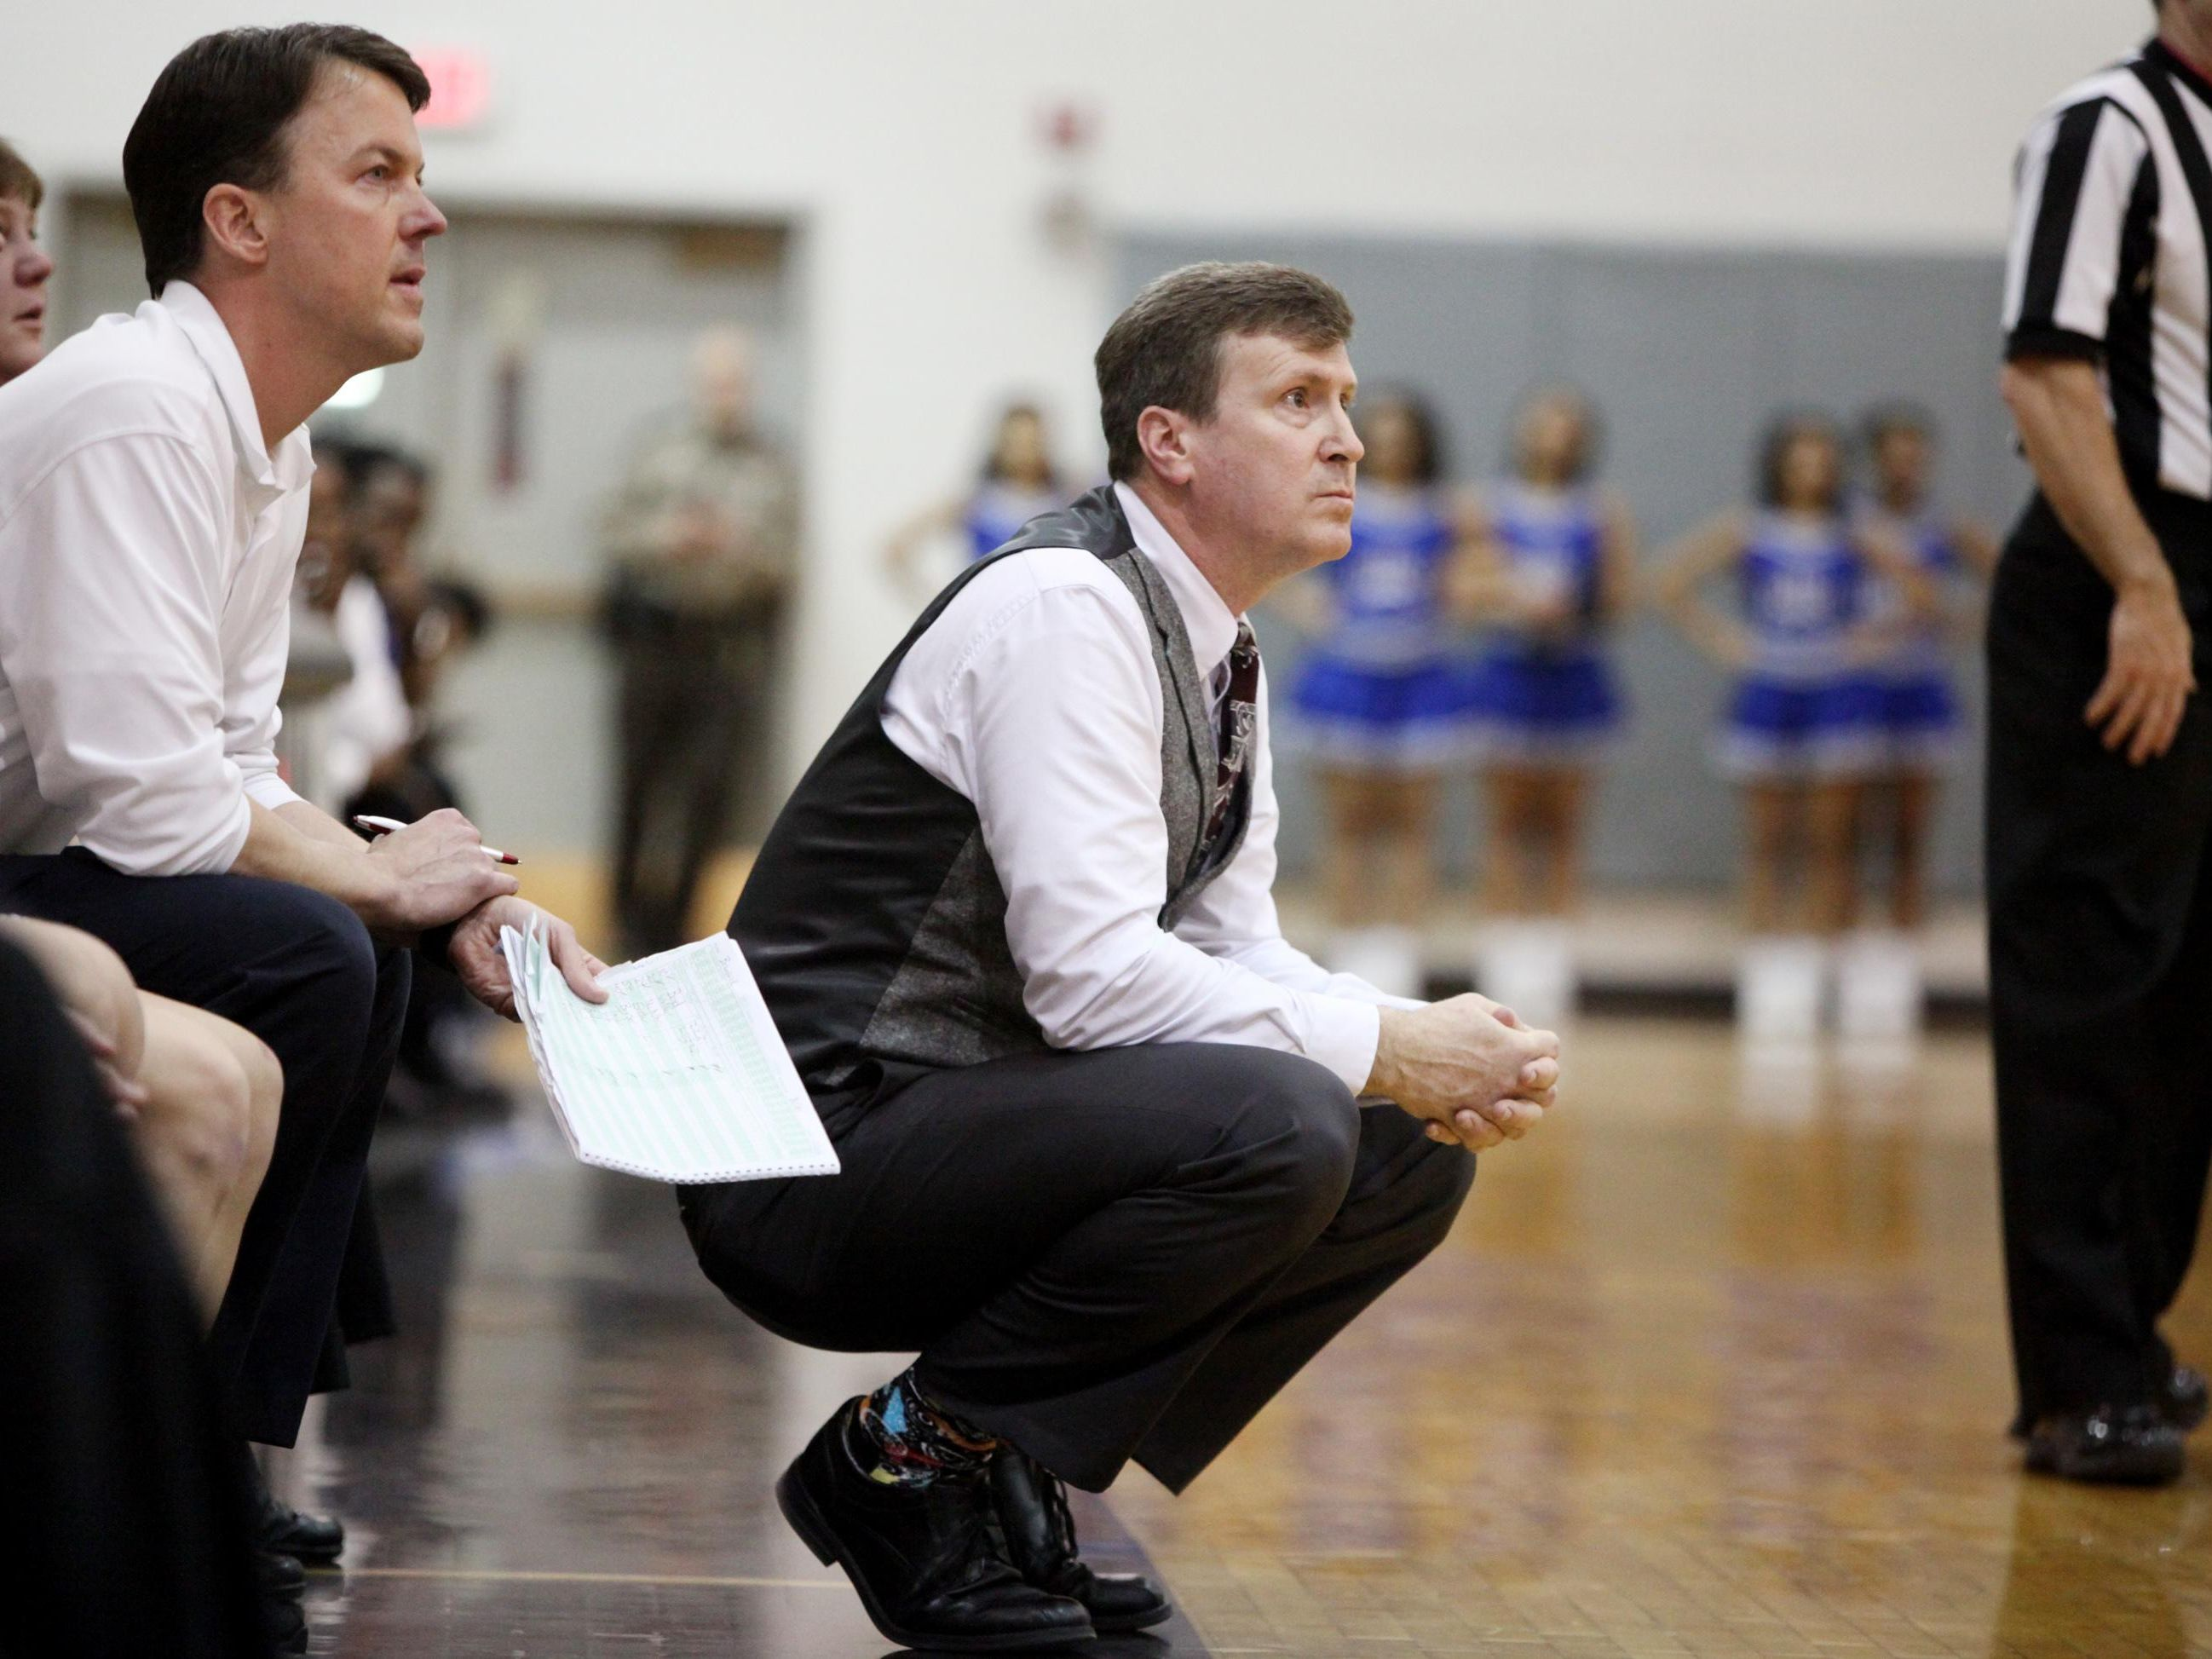 Buffalo Gap's Phillip Morgan, the All-City/County Girls Basketball Coach of the Year, guided the Bison to a 20-win season and a berth in the Group 2A state tournament.